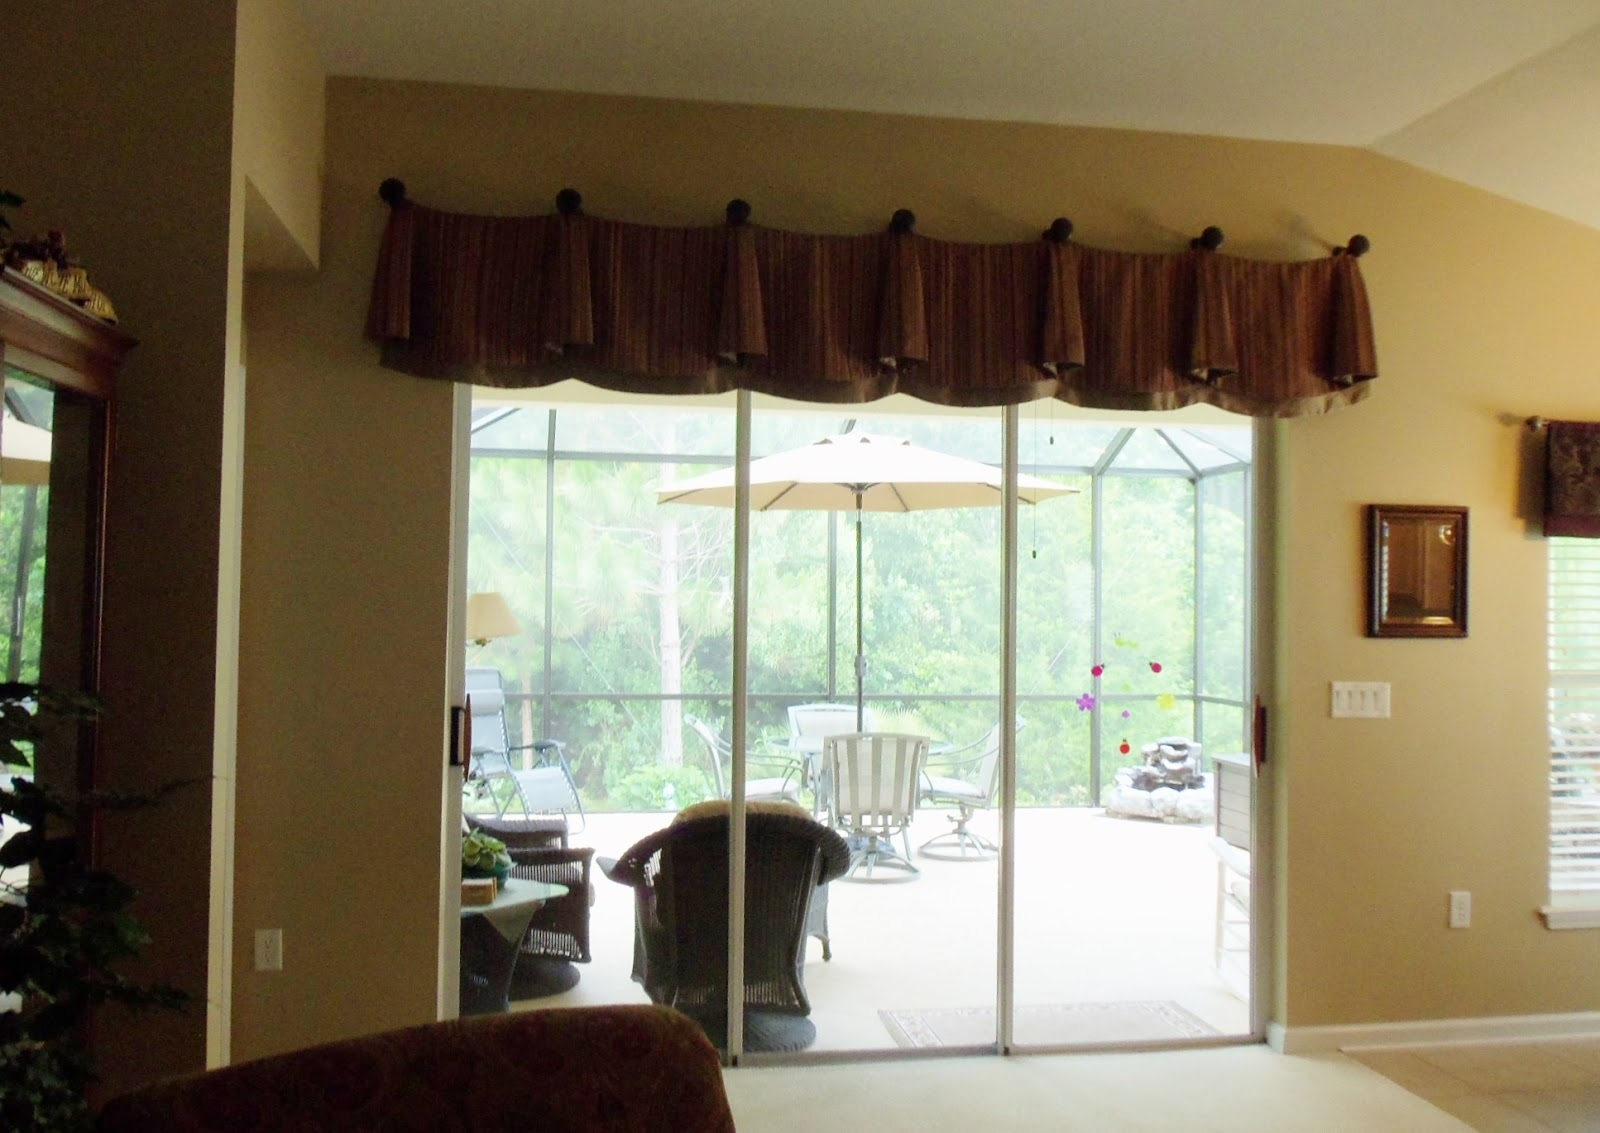 Sliding Patio Door Valancepatio doors patio door valance window treatments for sliding